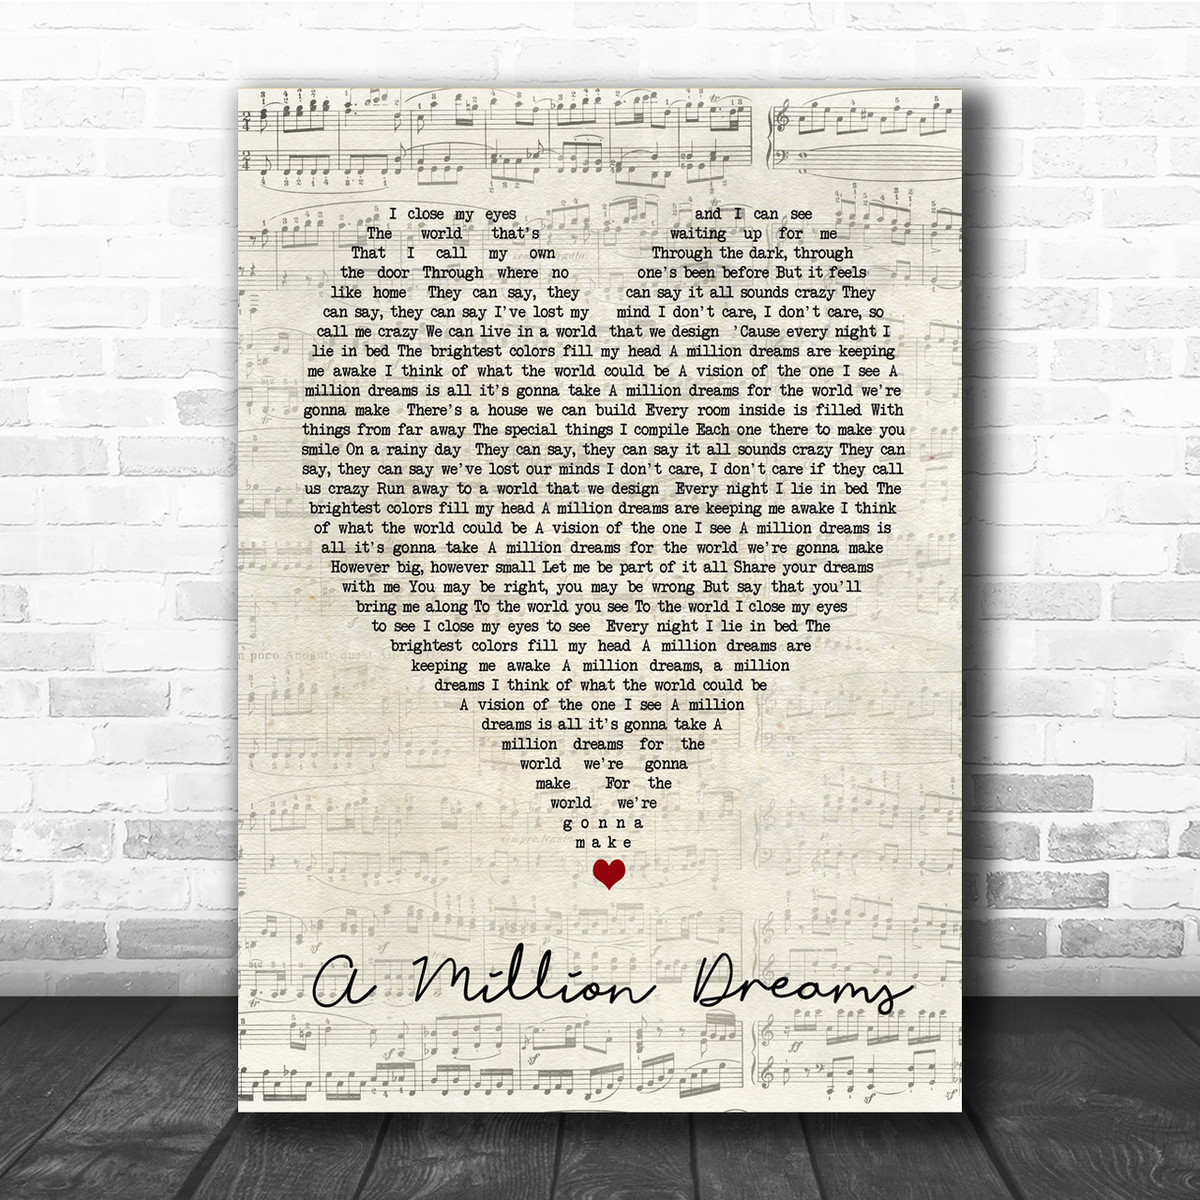 image about A Million Dreams Lyrics Printable identified as A Million Needs The Most important Showman Script Middle Music Lyric Quotation Print